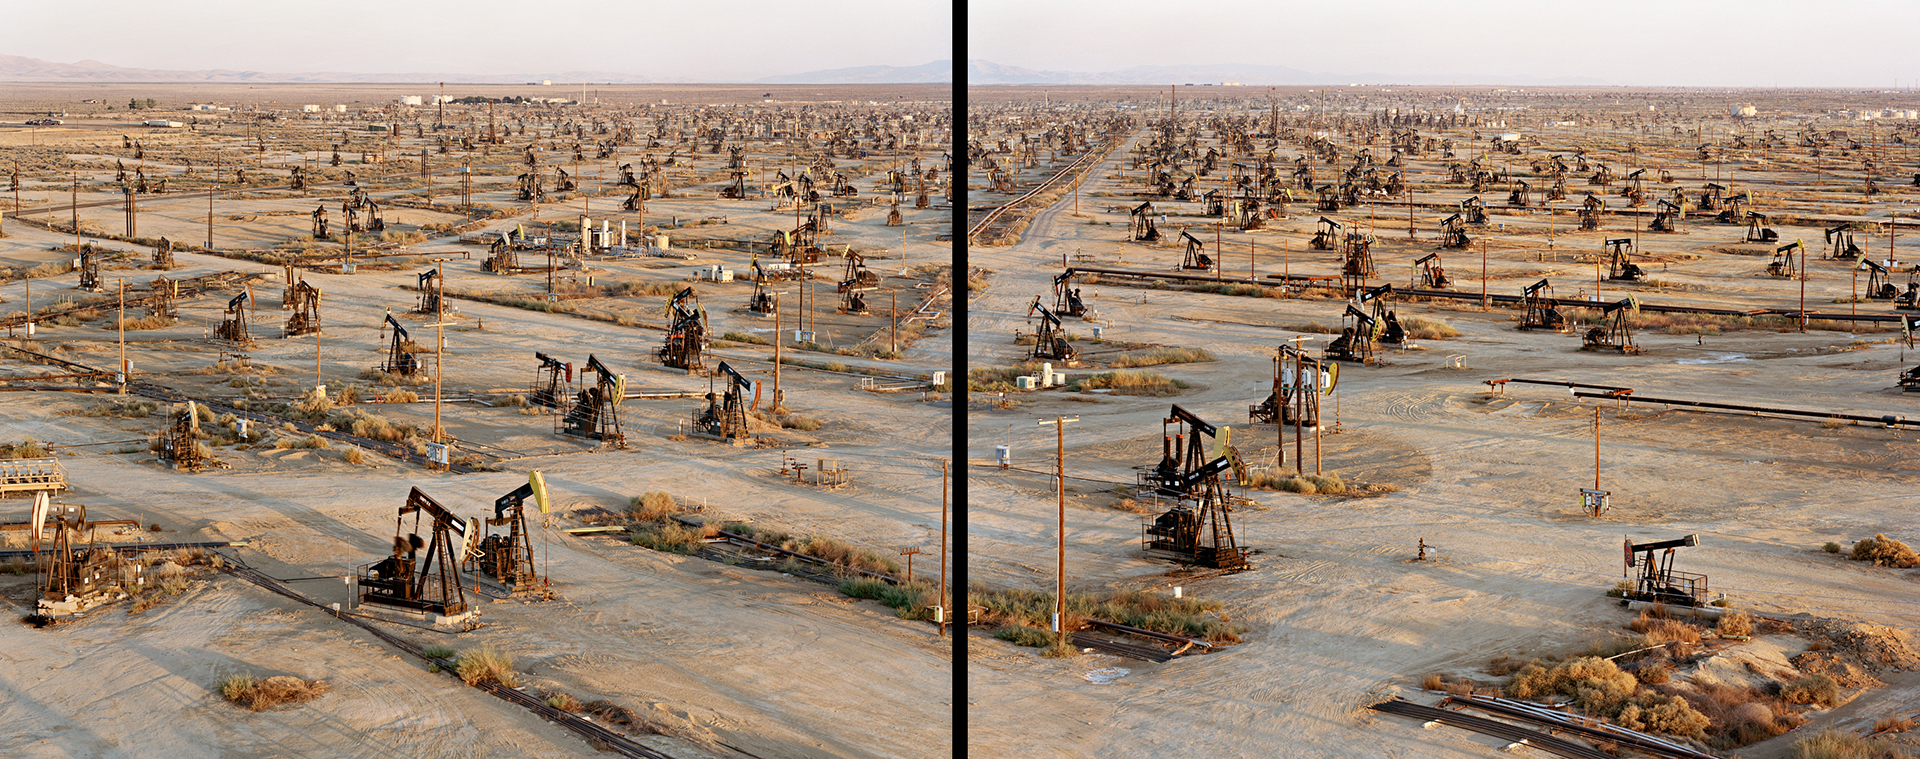 Oil Fields #19ab, Belridge, California, USA, 2003. Click on the audio player below to listen to the audio description.